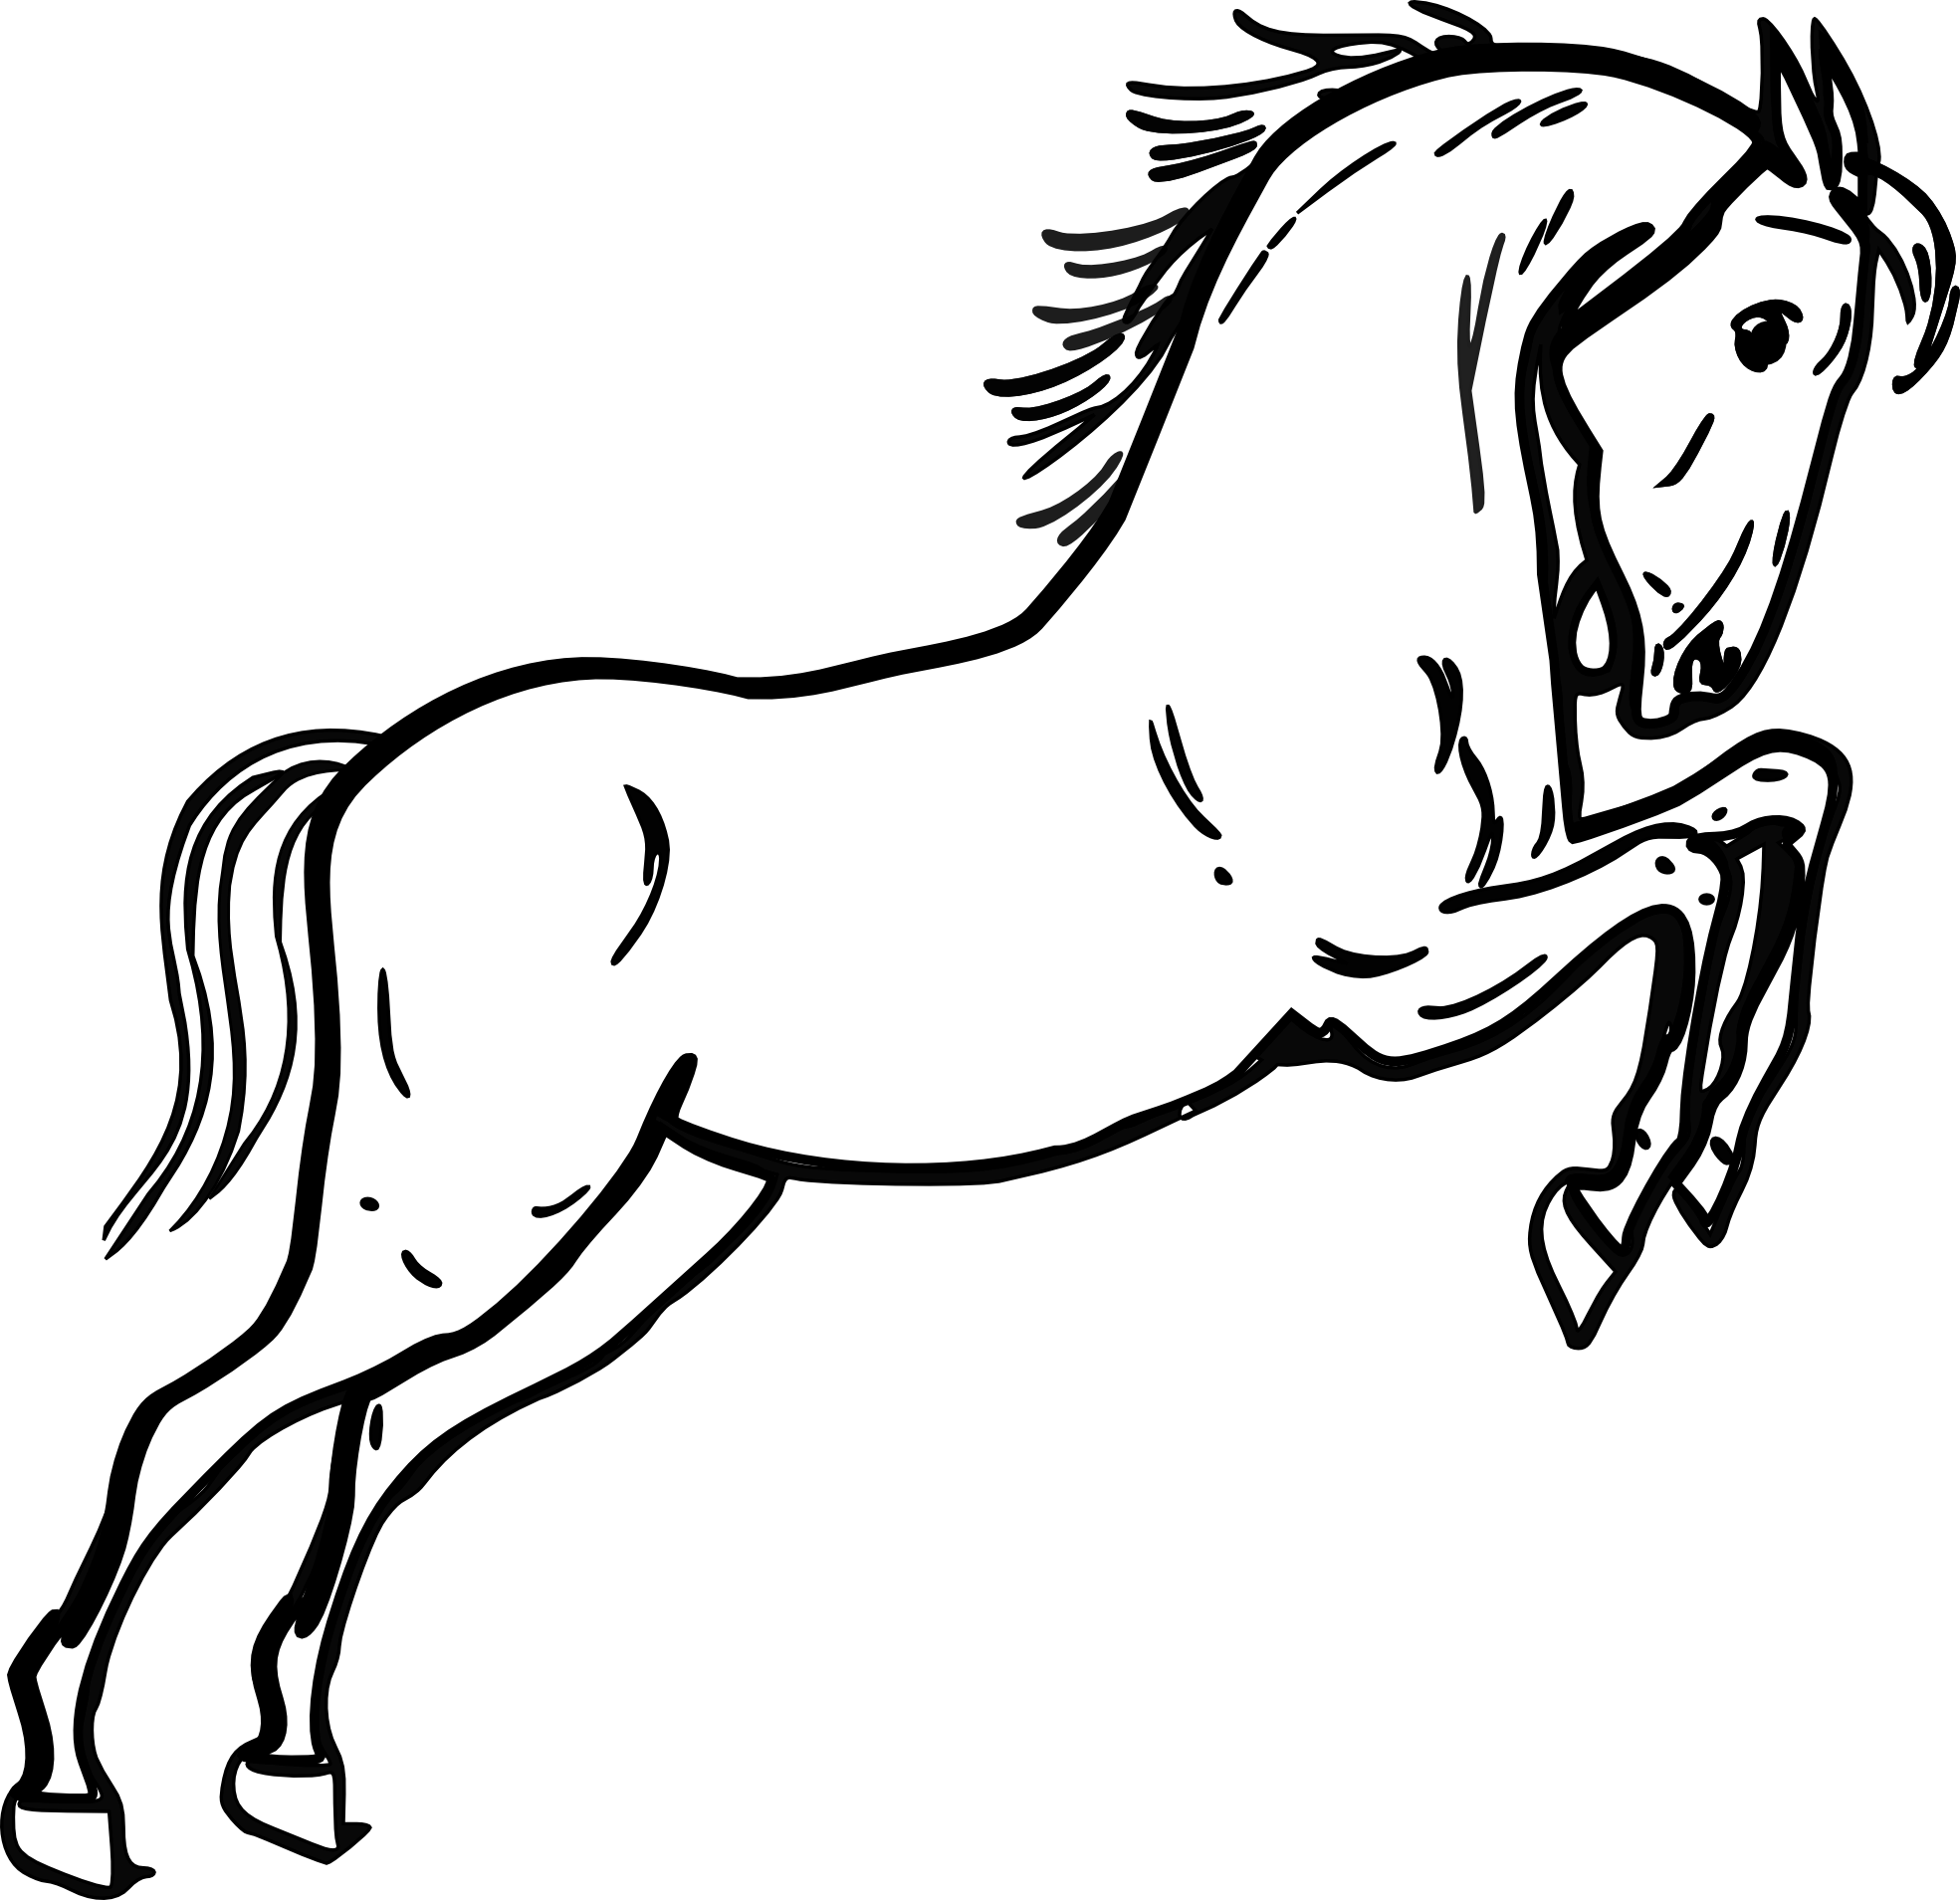 Horse Line Drawing Tattoo : Running horse clipart black and white panda